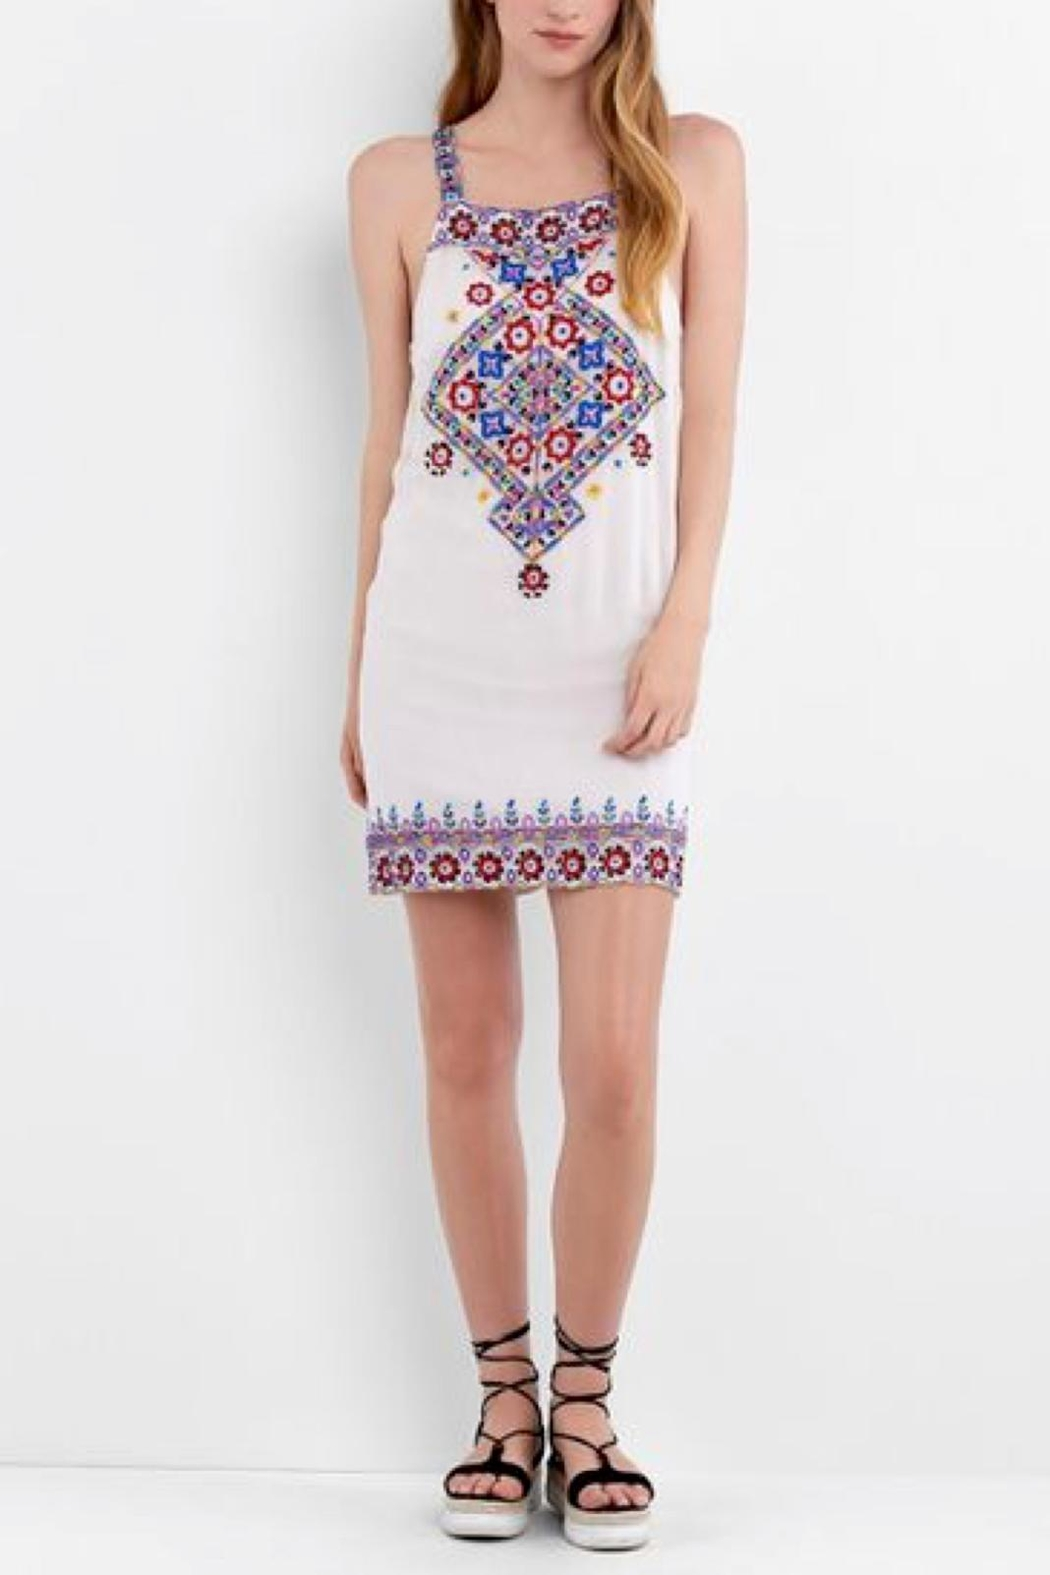 Nicole Miller Portofino Beaded Dress - Main Image